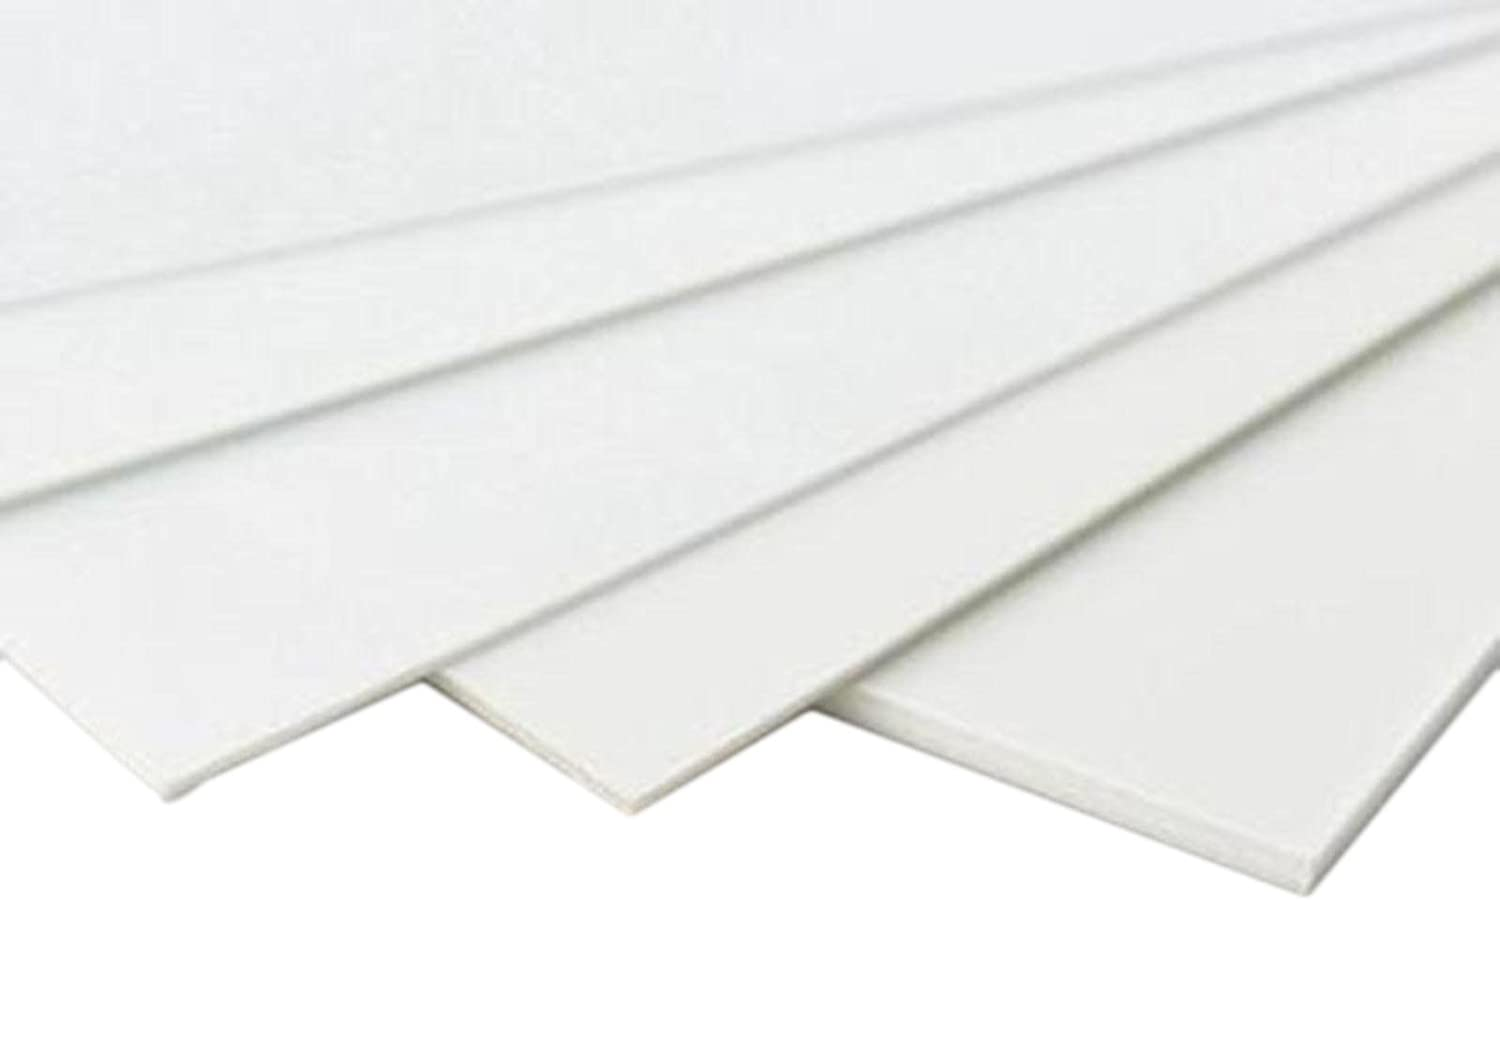 Amazon Com 5pcs Abs Styrene Plastic Flat Sheet Plate 0 5mm X 200mm X 250mm White Industrial Scientific